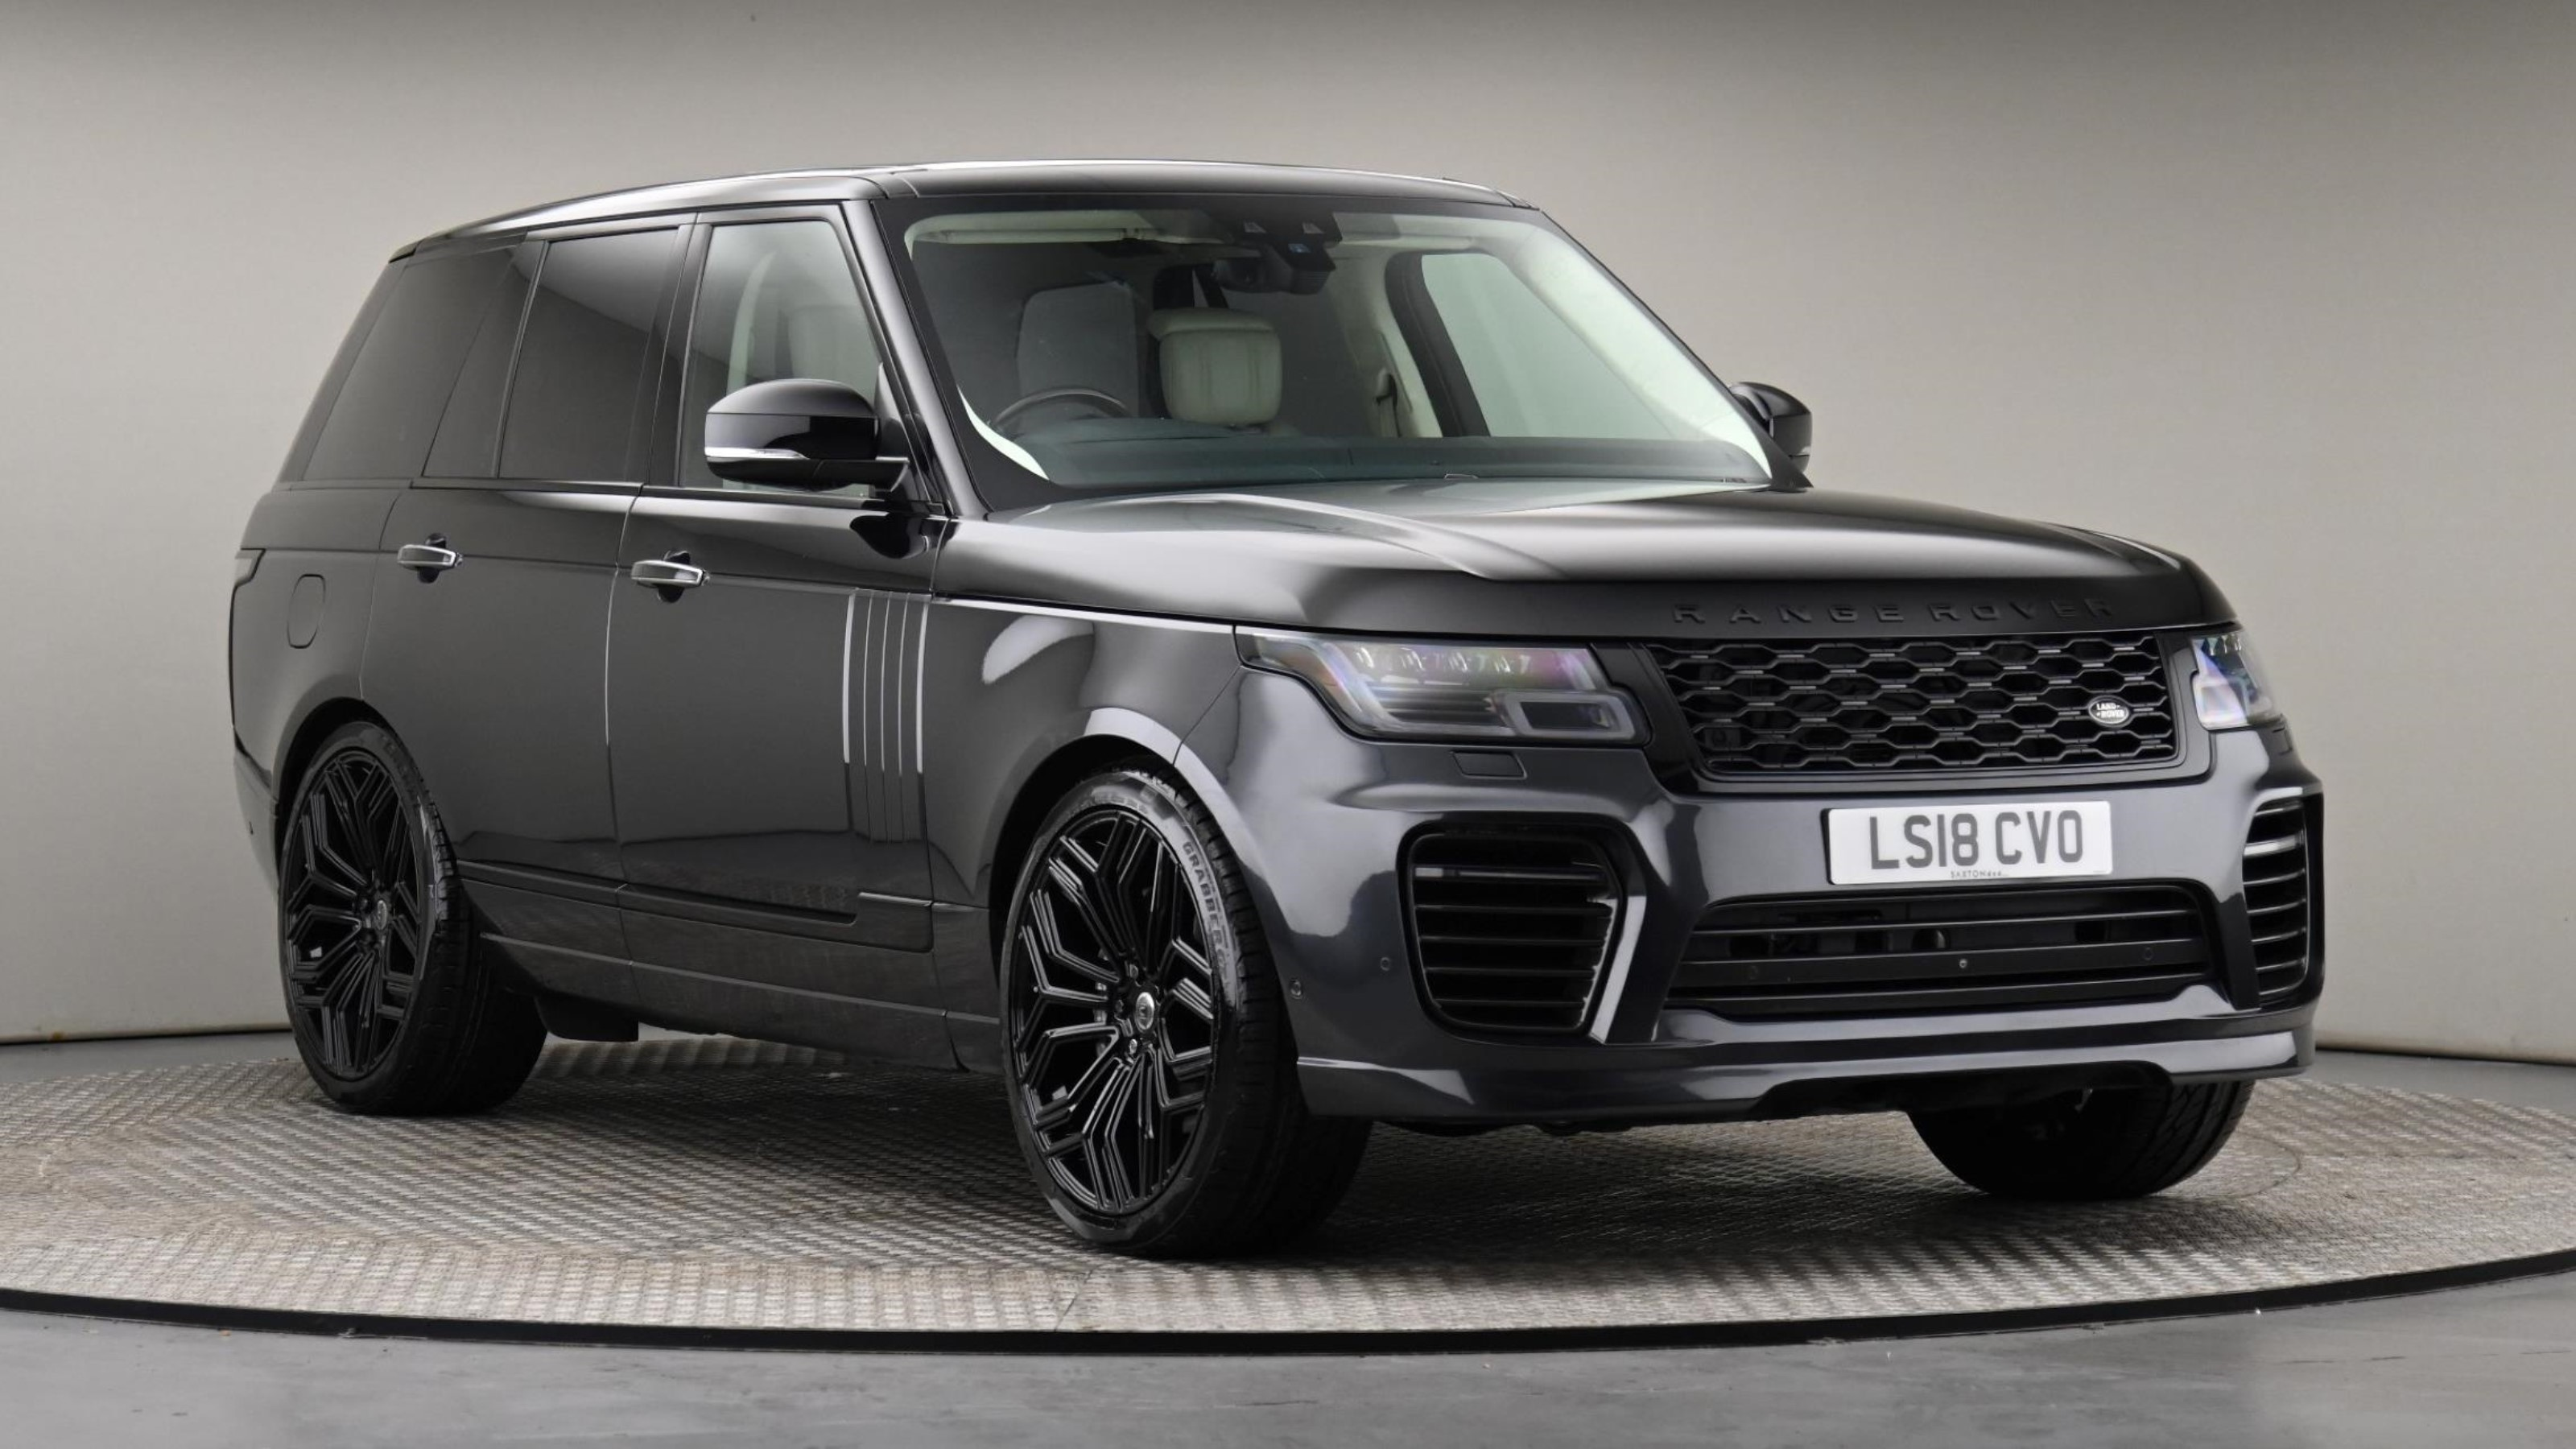 Used 2018 Land Rover RANGE ROVER 5.0 V8 S/C Autobiography 4dr Auto at Saxton4x4